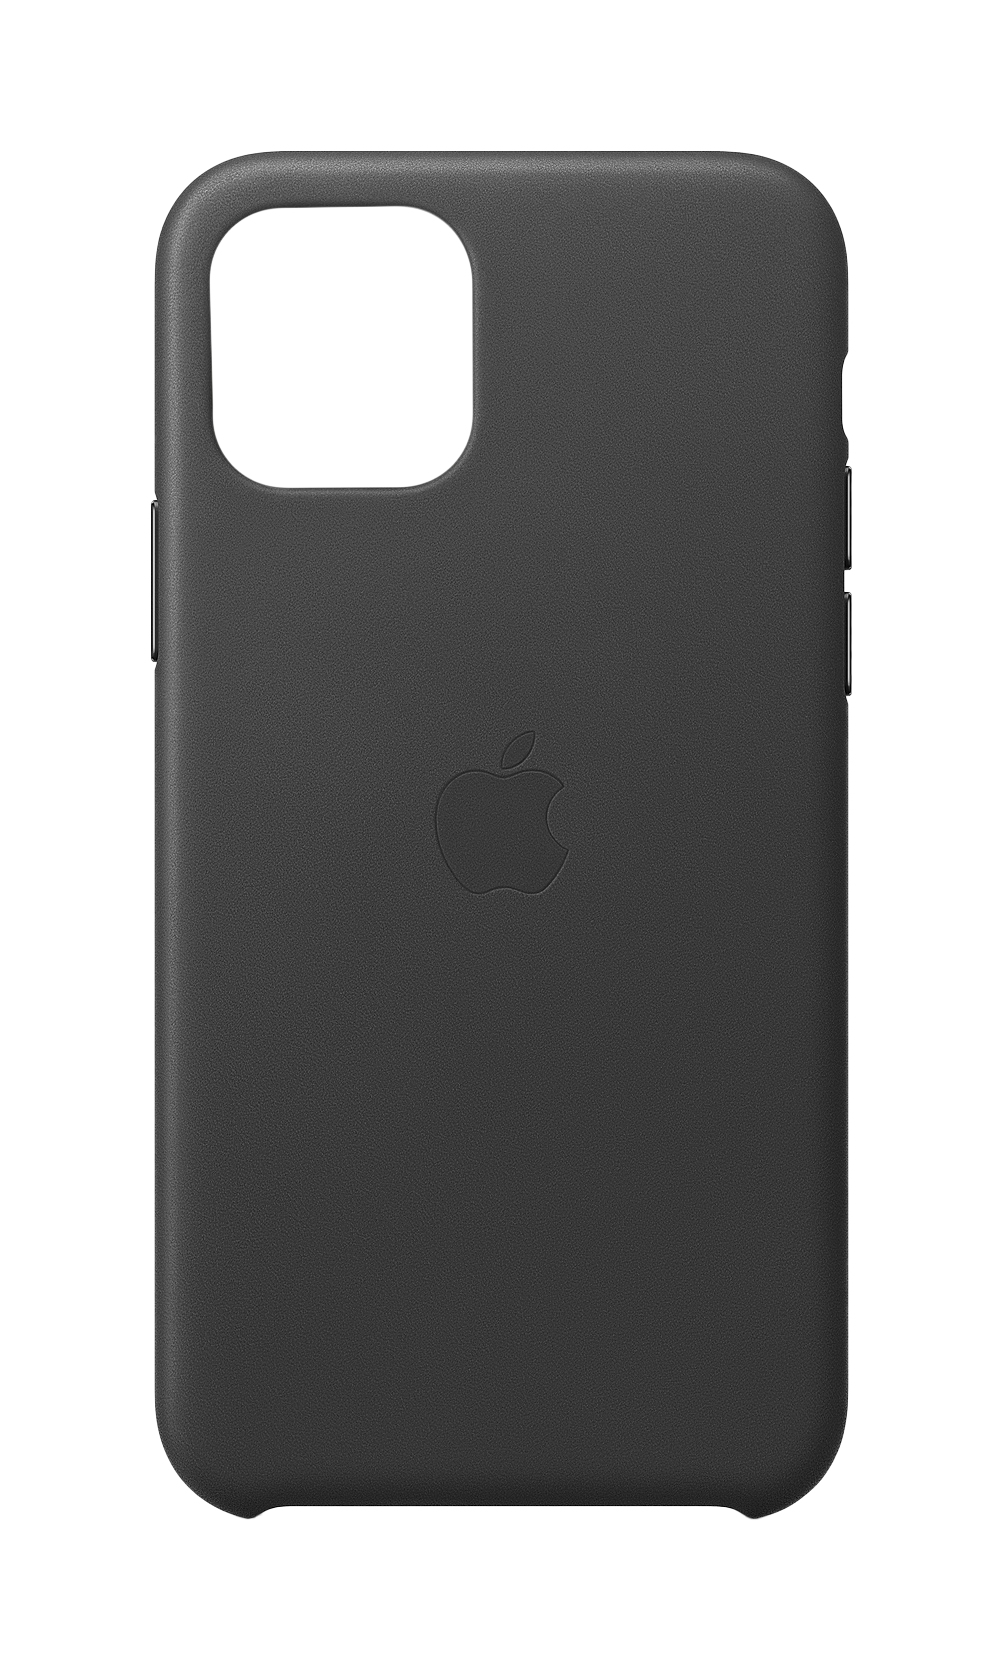 "Apple MWYE2ZM/A mobile phone case 14.7 cm (5.8"") Cover Black"